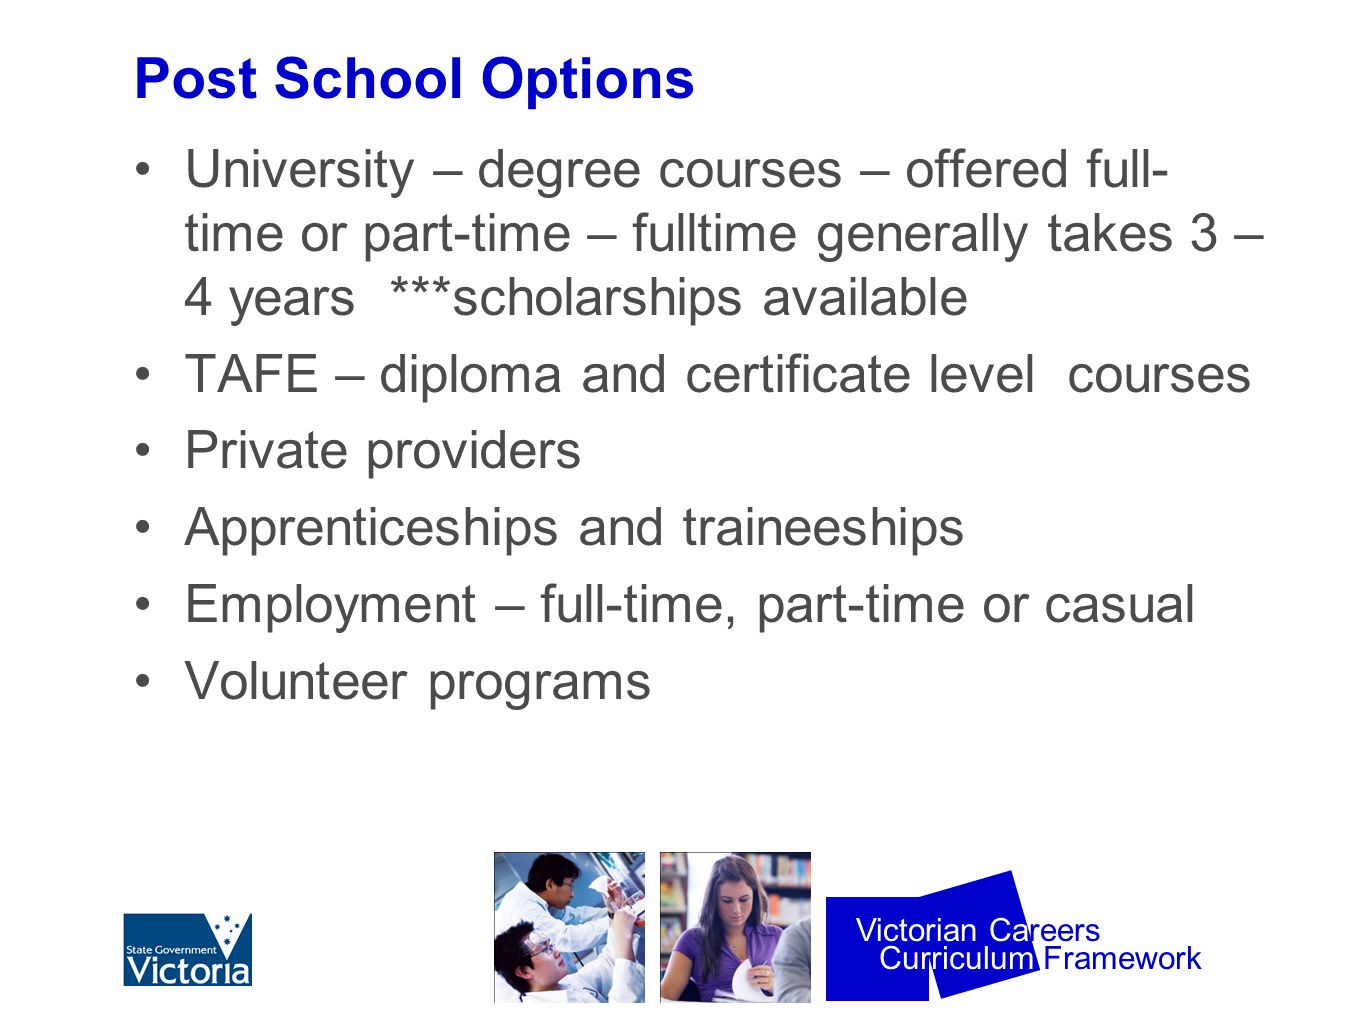 Curriculum Framework Victorian Careers Post School Options University – degree courses – offered full- time or part-time – fulltime generally takes 3 – 4 years ***scholarships available TAFE – diploma and certificate level courses Private providers Apprenticeships and traineeships Employment – full-time, part-time or casual Volunteer programs